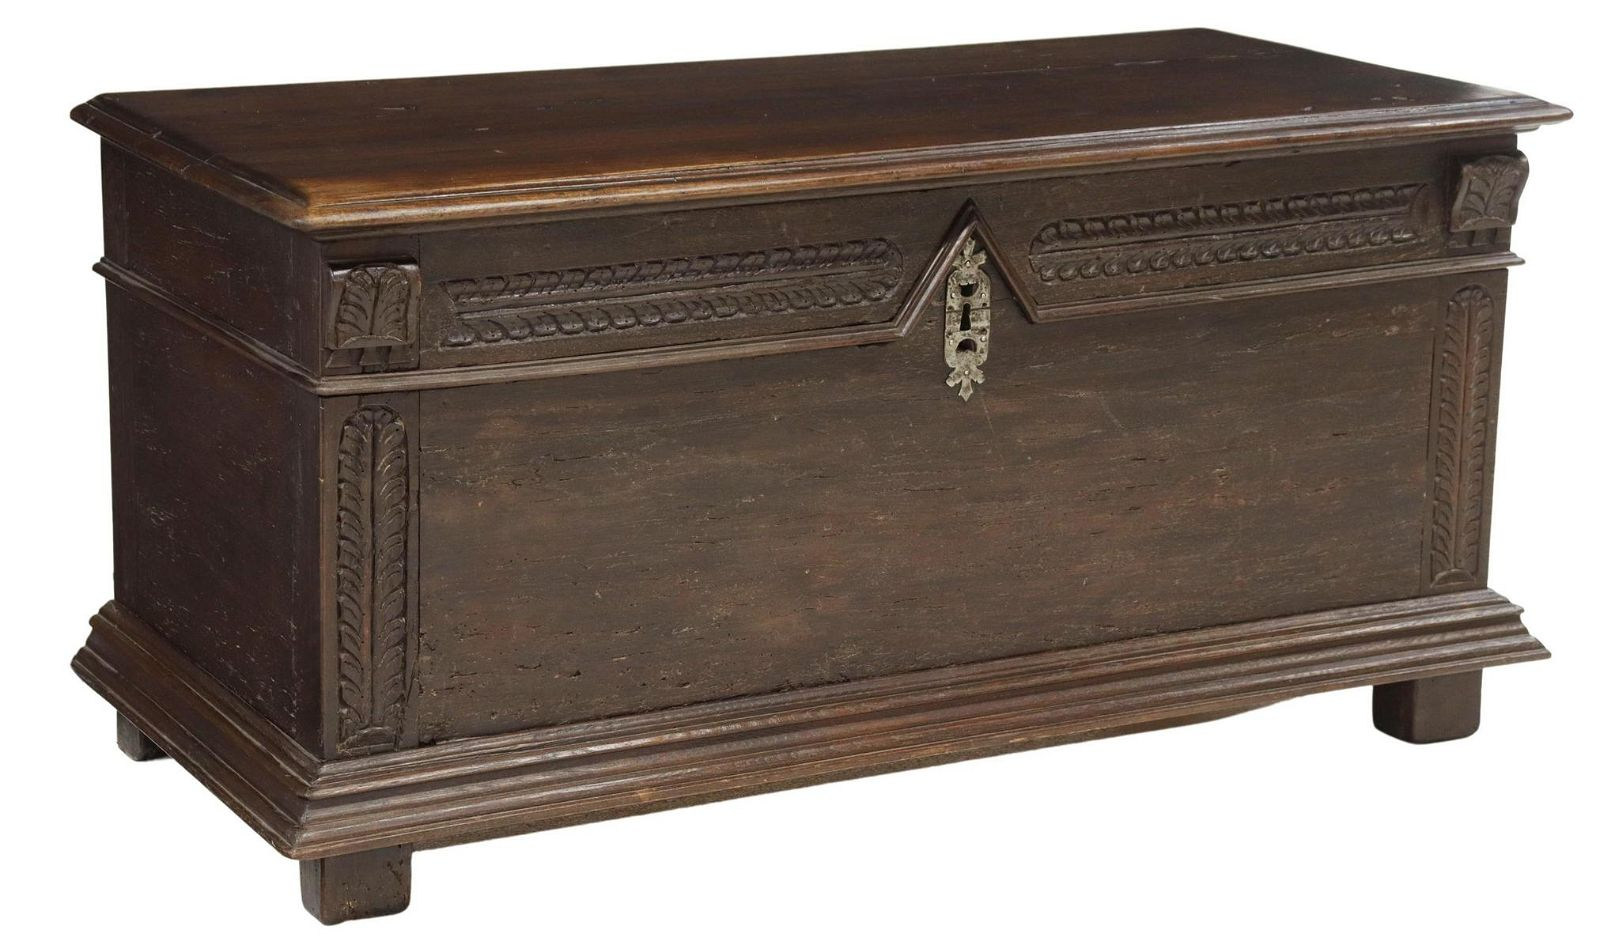 ANTIQUE FRENCH MIXED WOOD COFFER TRUNK